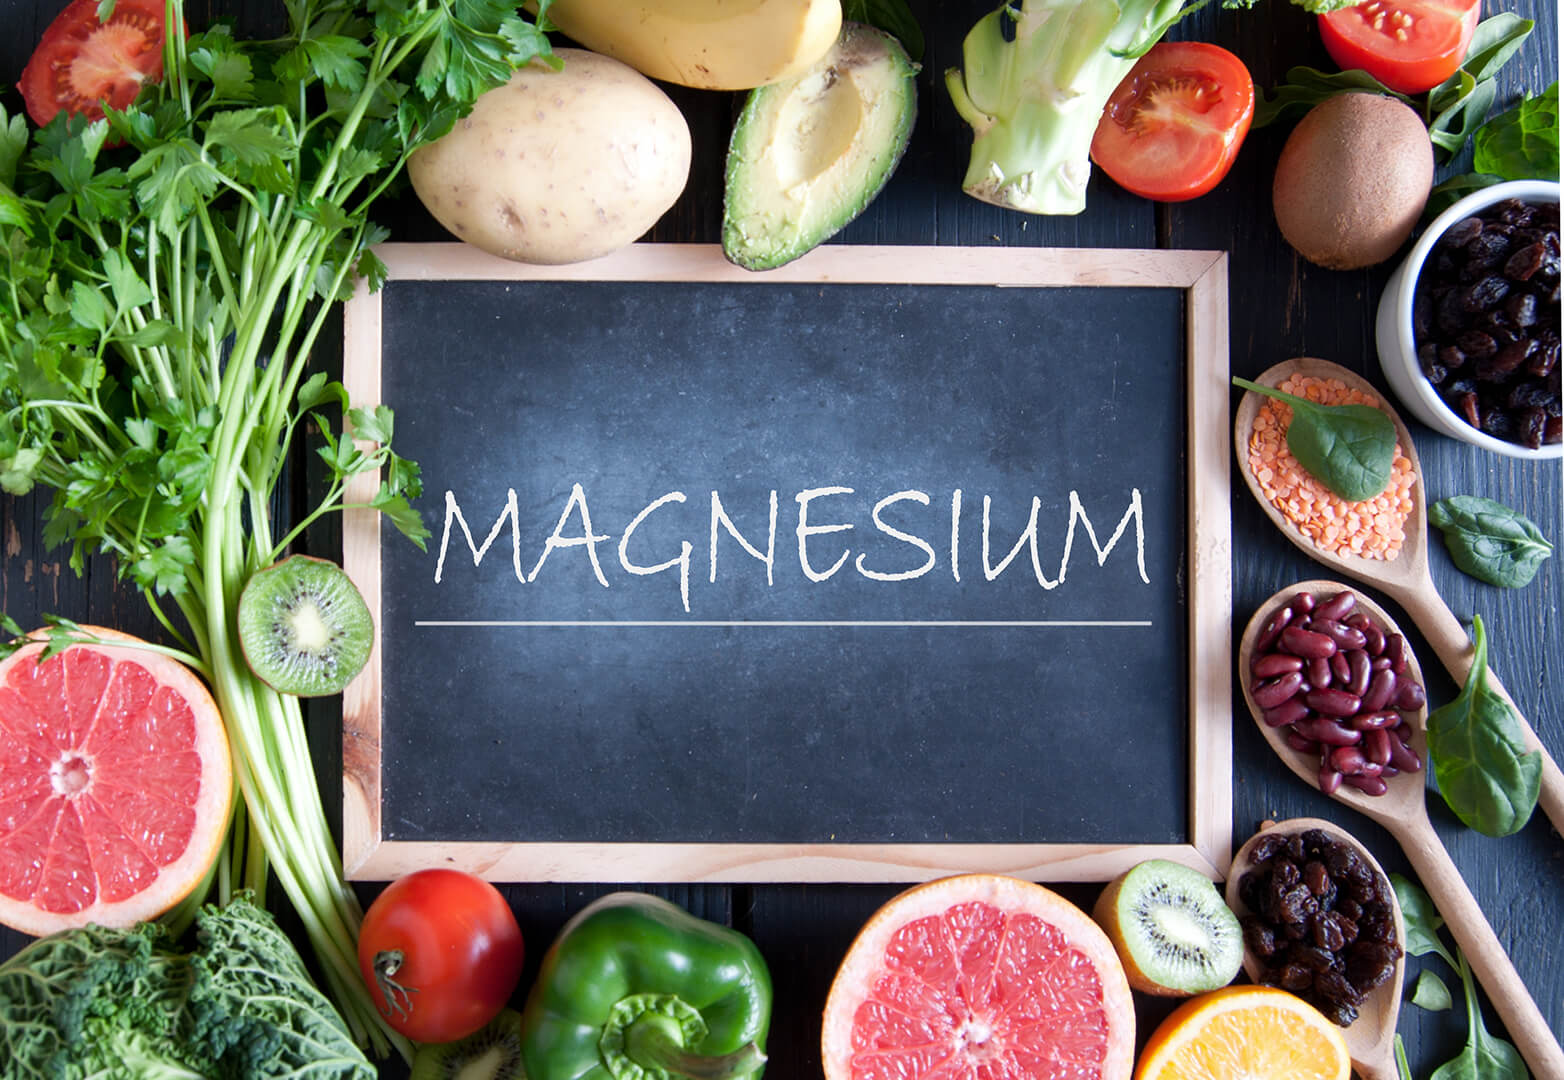 New study links magnesium with improved heart health for diabetics